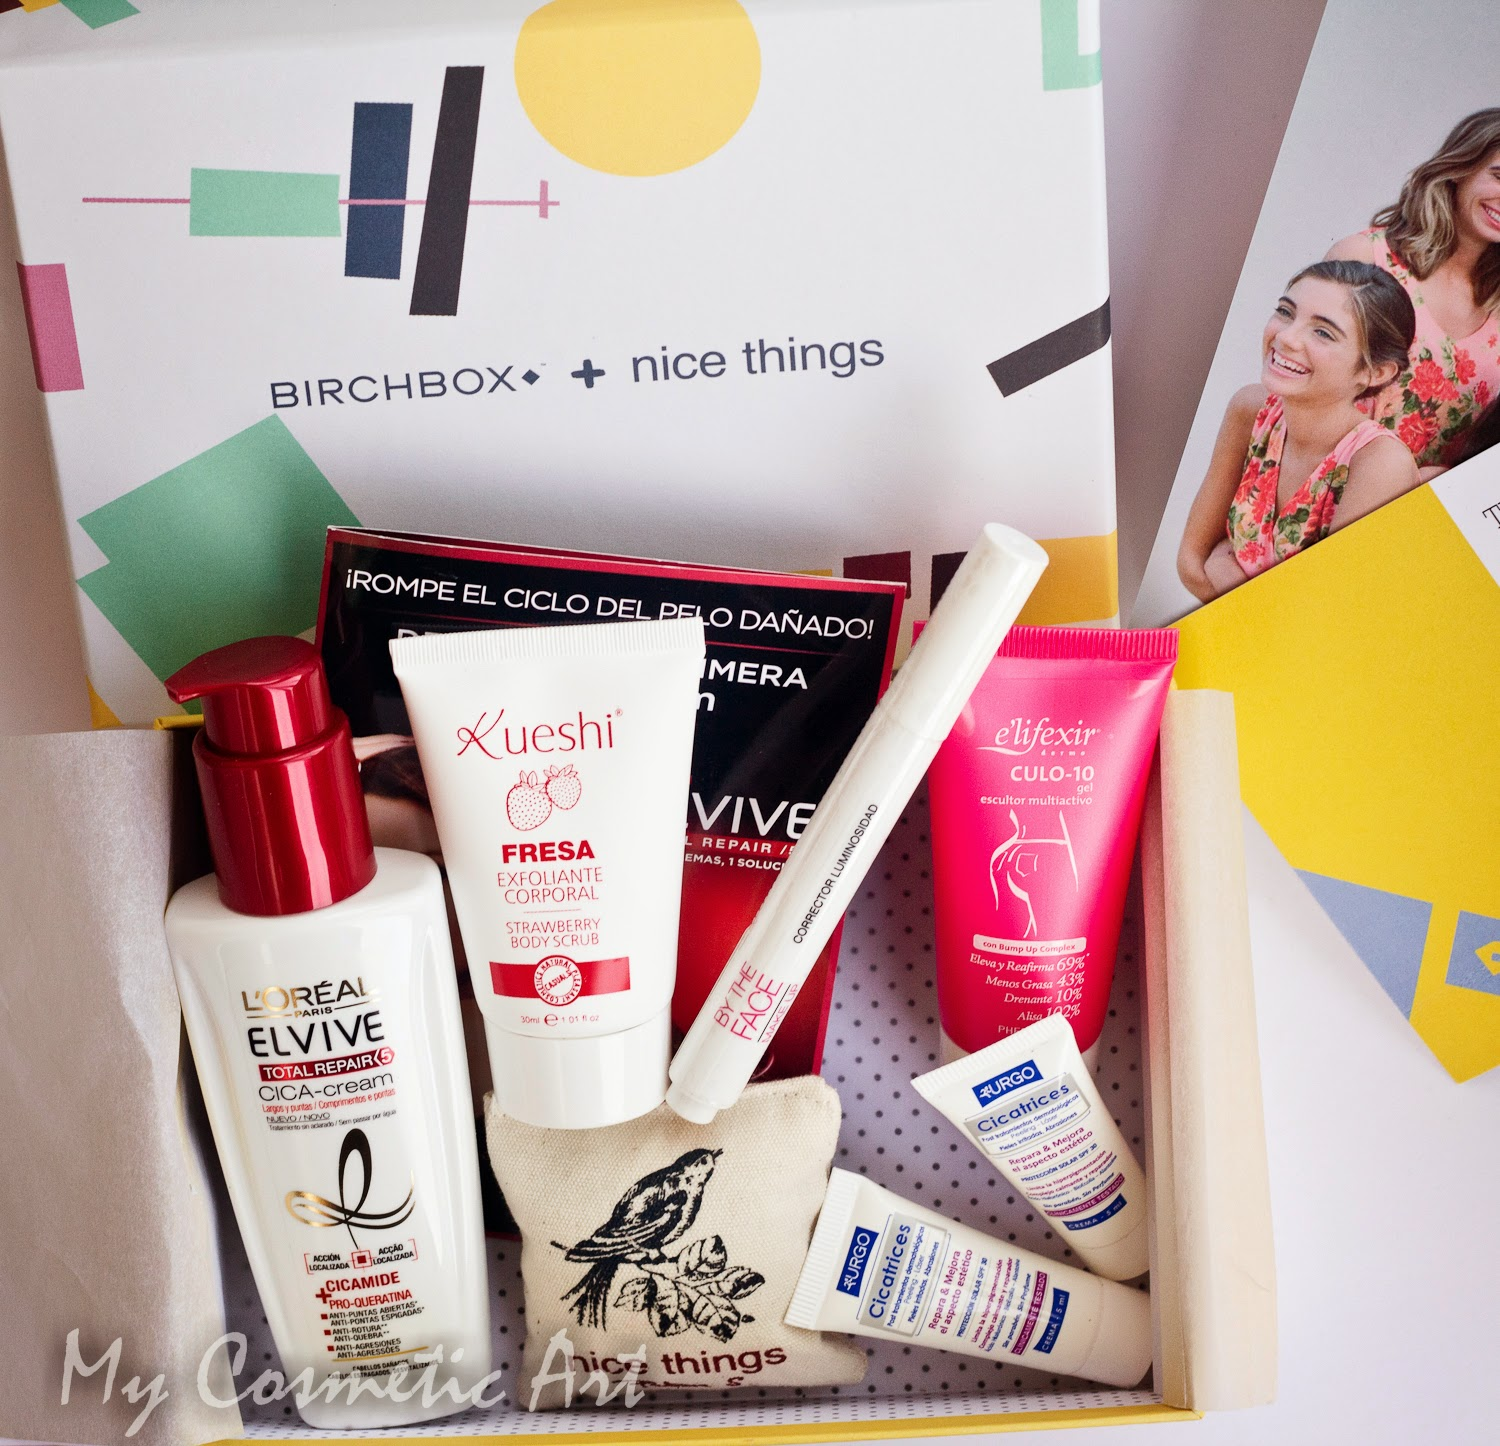 Birchbox Marzo 2015 The Little Things